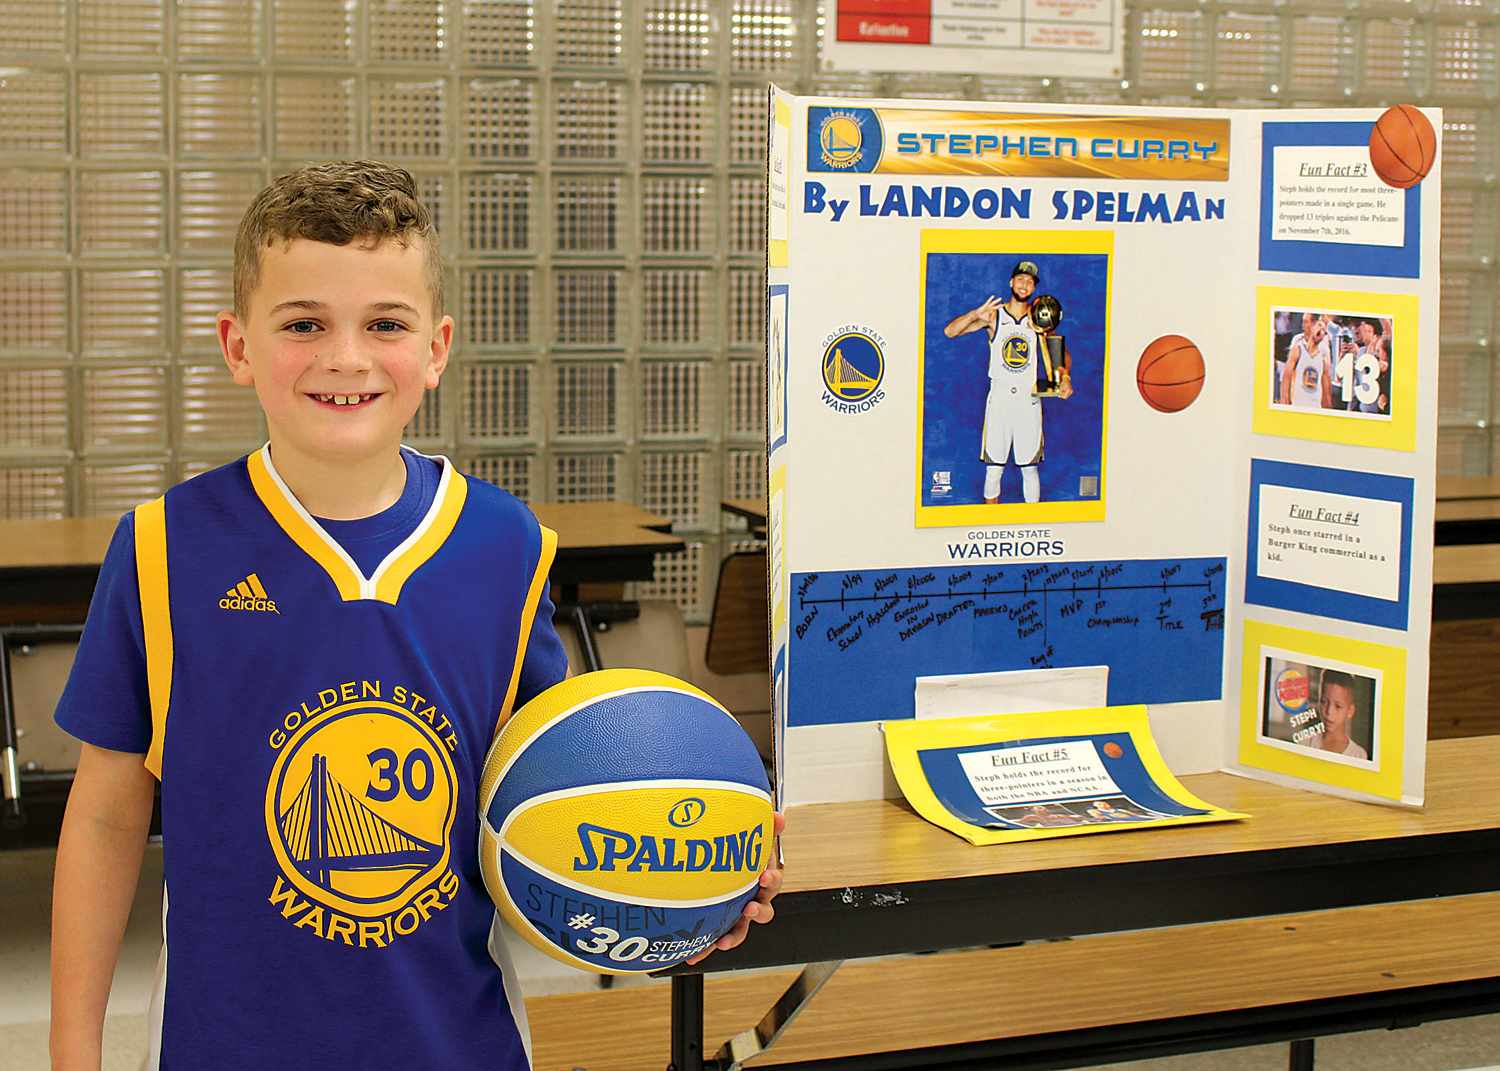 Landon Spelman, a second grader at Village Elementary School in Hilton, portrays Stephen Curry of the Golden State Warriors during his class's Wax Museum.